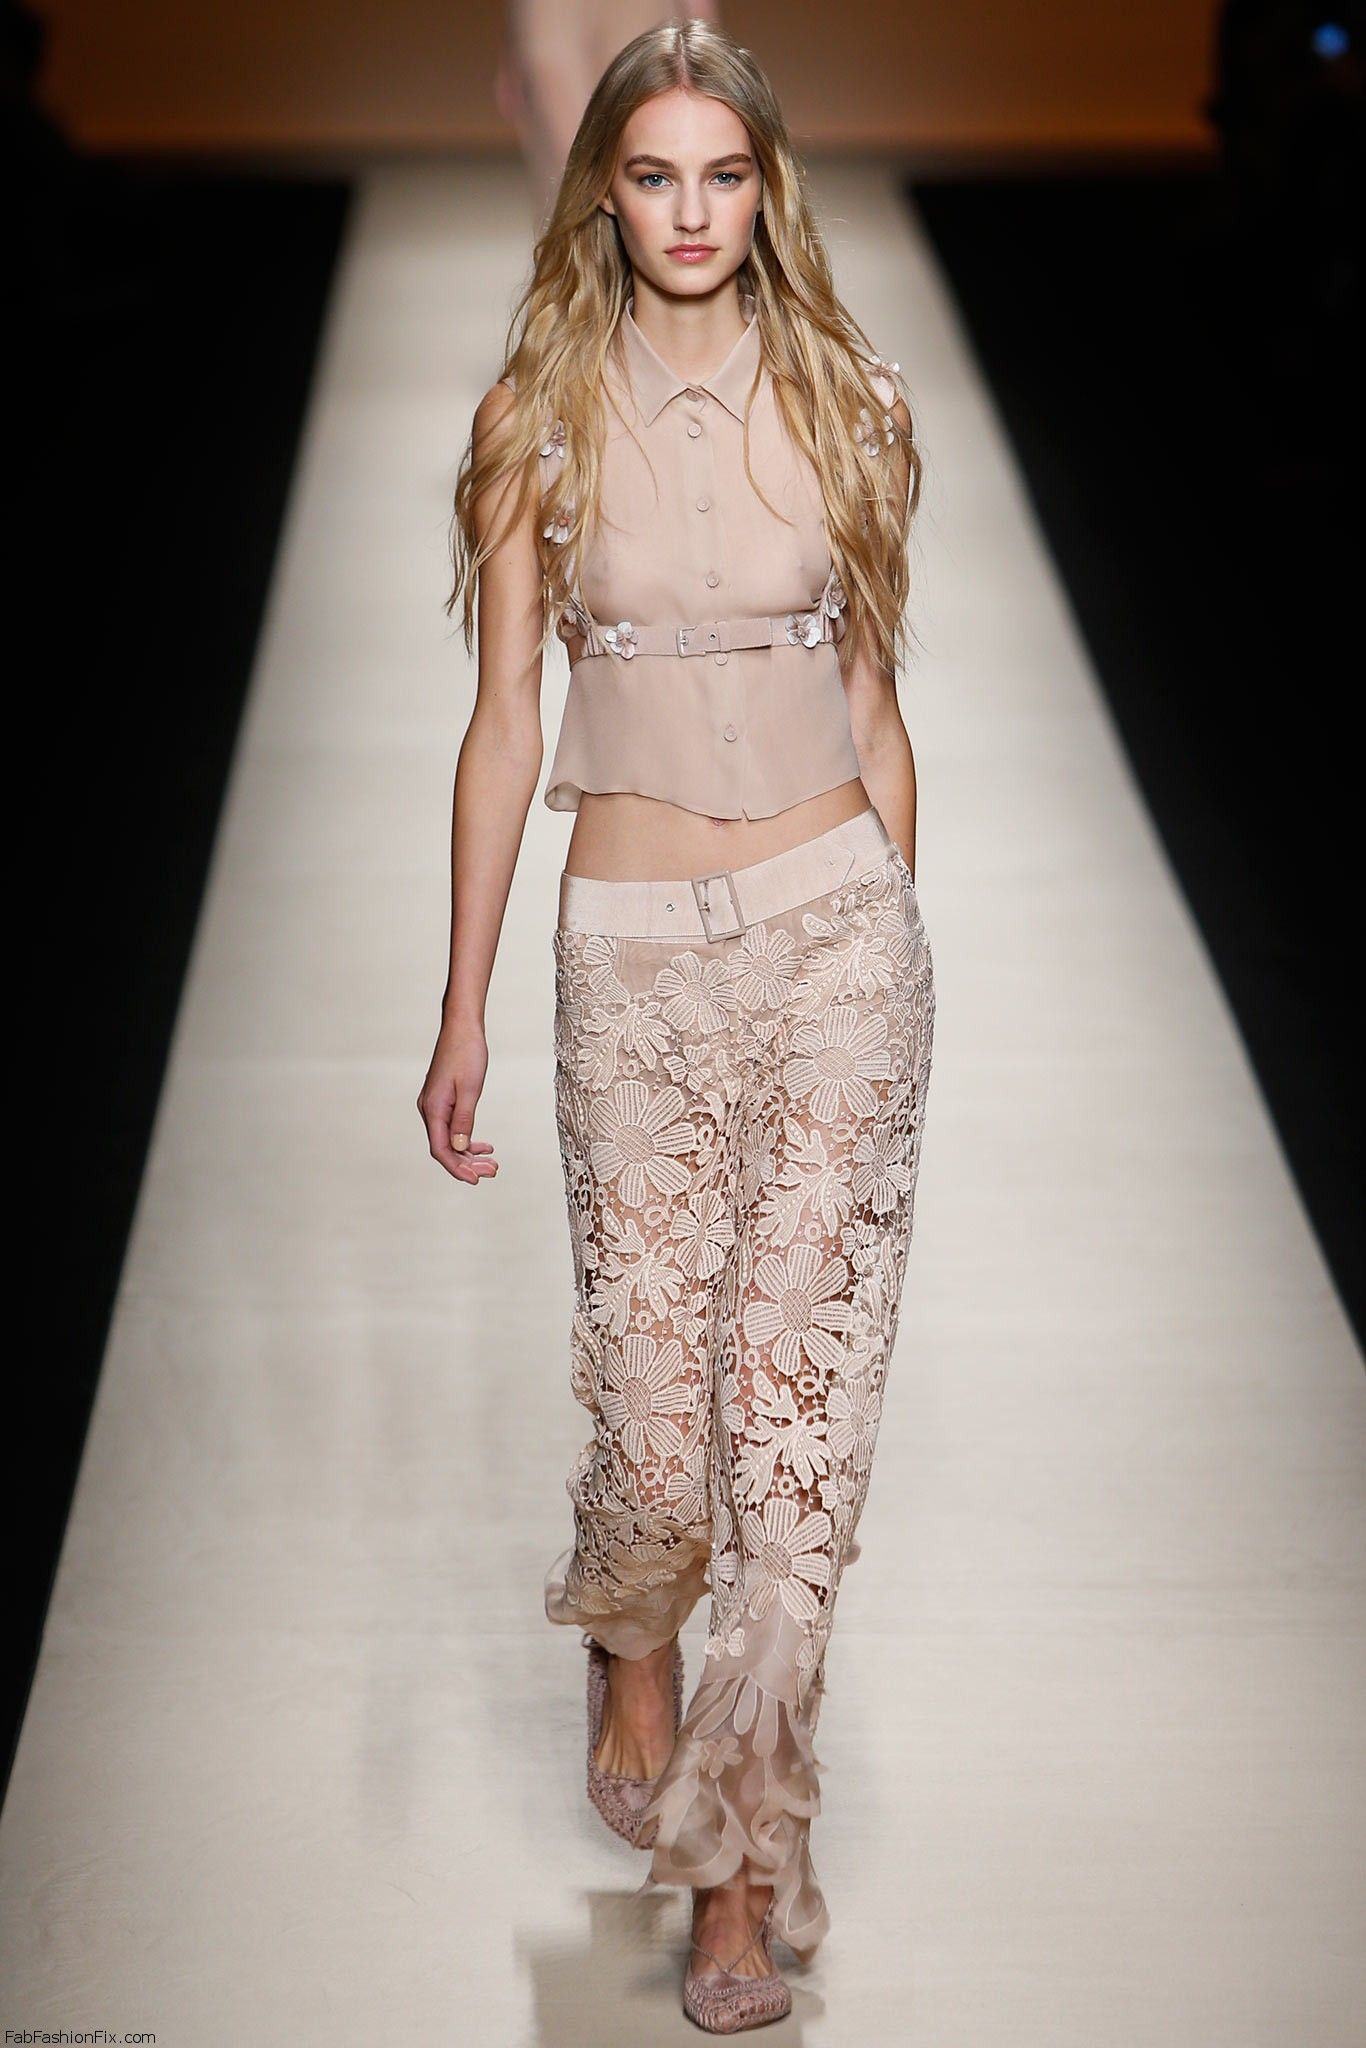 Alberta Ferretti Spring Summer 2015 Collection Milan Fashion Week Fab Fashion Fix